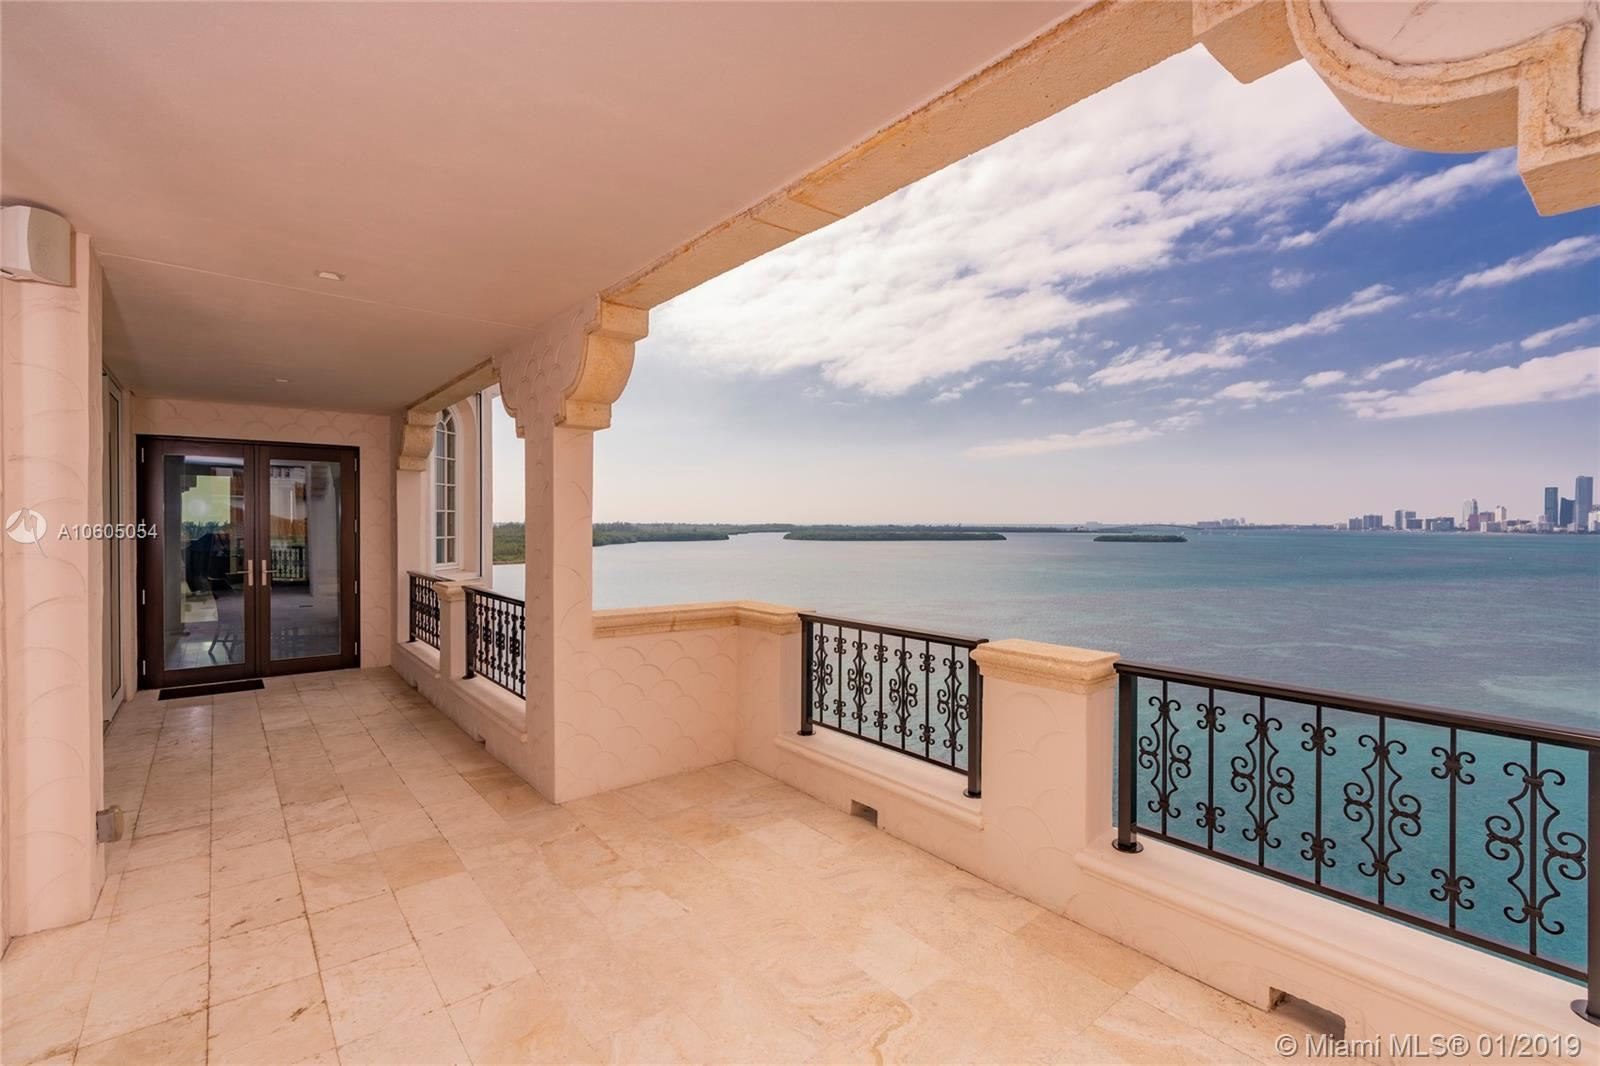 Photo 21 of Listing MLS a10605054 in 5203 Fisher Island Drive #5203 Miami FL 33109